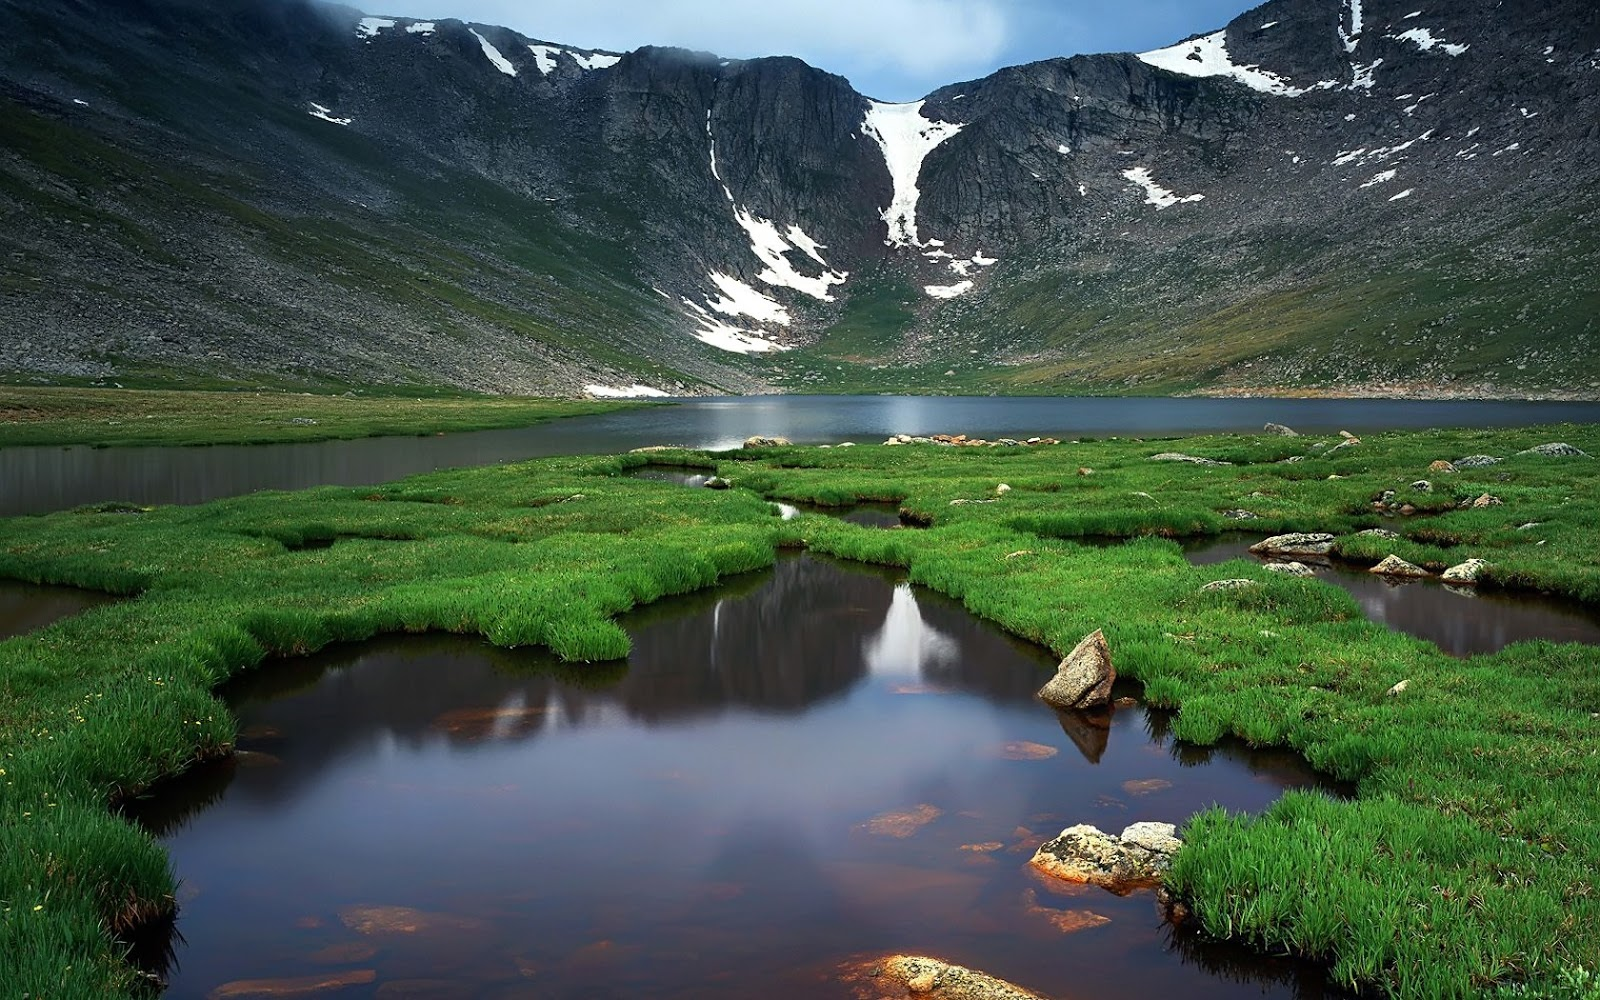 wallpaper proslut: Top Nature Wallpapers HD Glacier Lake Mountains Clear Water High Res Picture